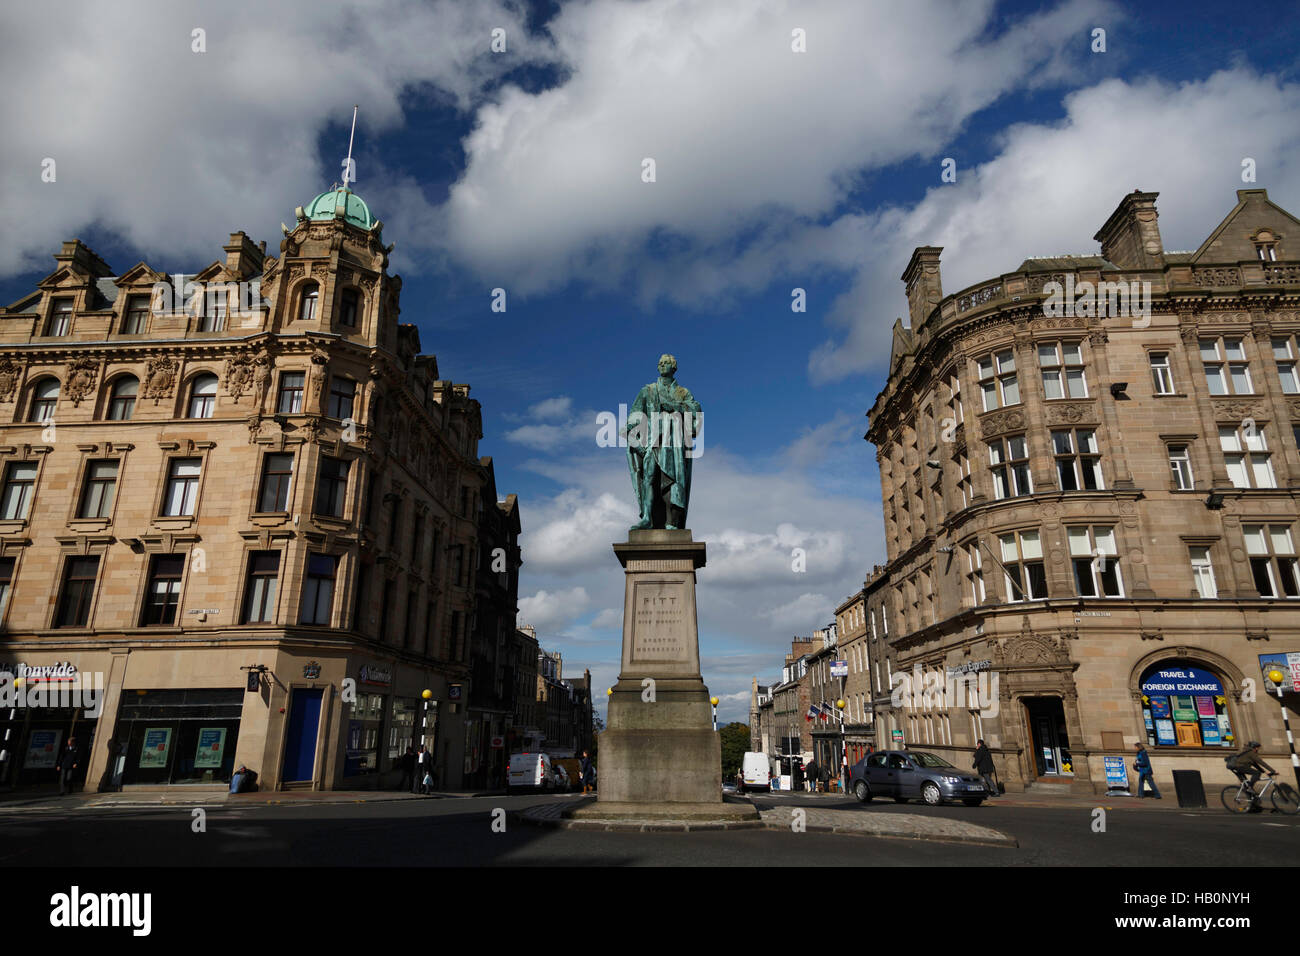 Statue of William Pitt (the younger), at the intersection of Frederick and George Streets in Edinburgh, Scotland - Stock Image